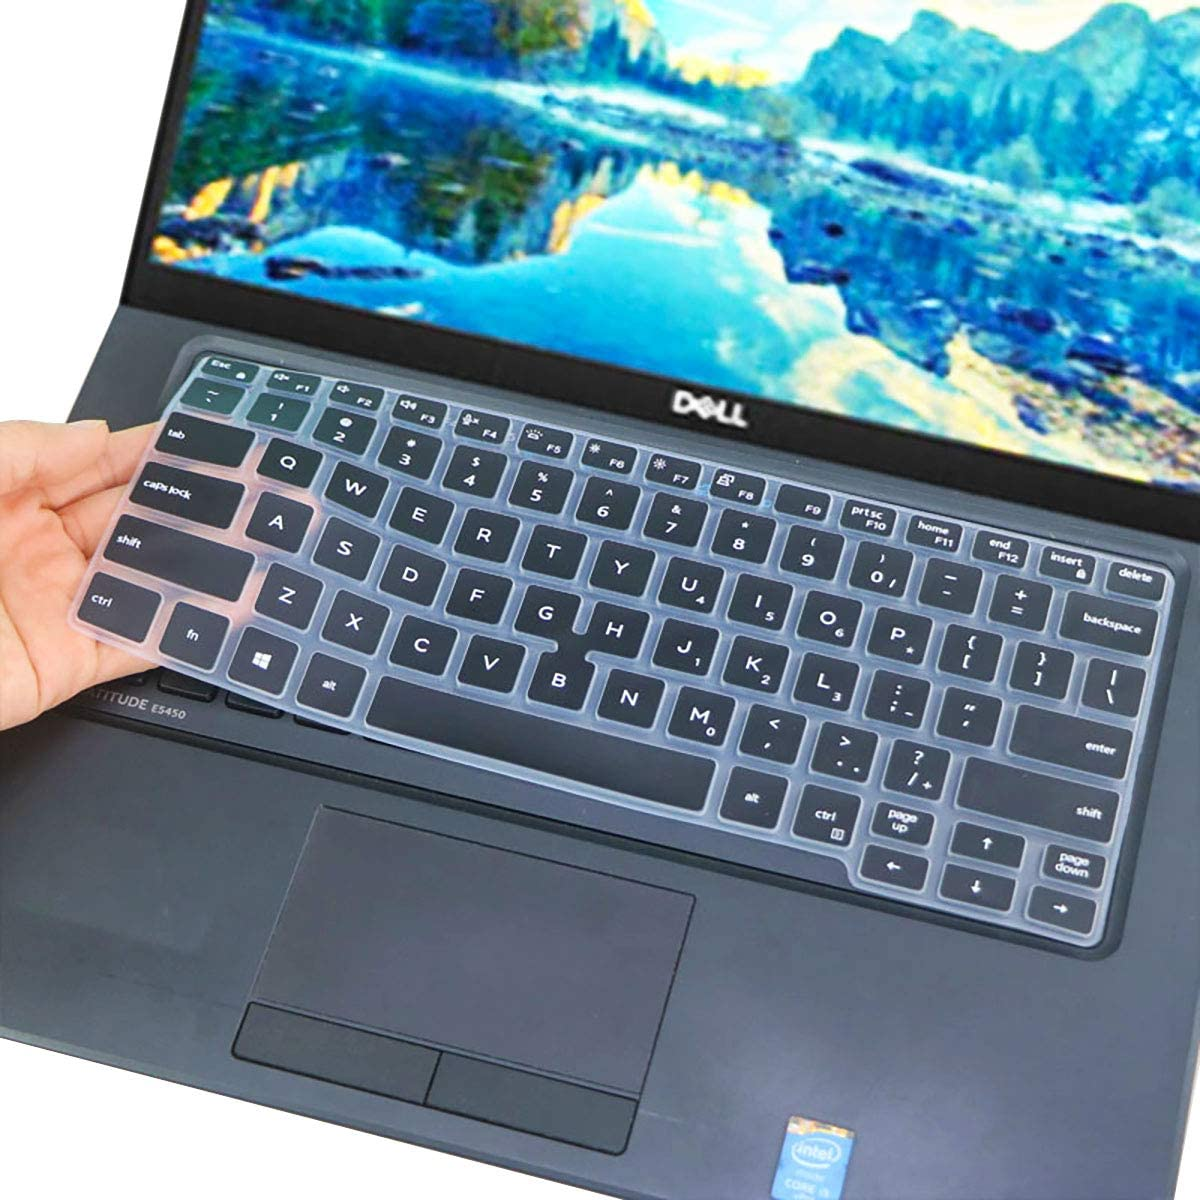 Keyboard Cover Design for 2020 2019 Dell Latitude 5400 5401 7400 14 Inch with Pointing Laptop |Dell Latitude 14 Series 5411 US Layout Keyboard Cover Skin -Black…